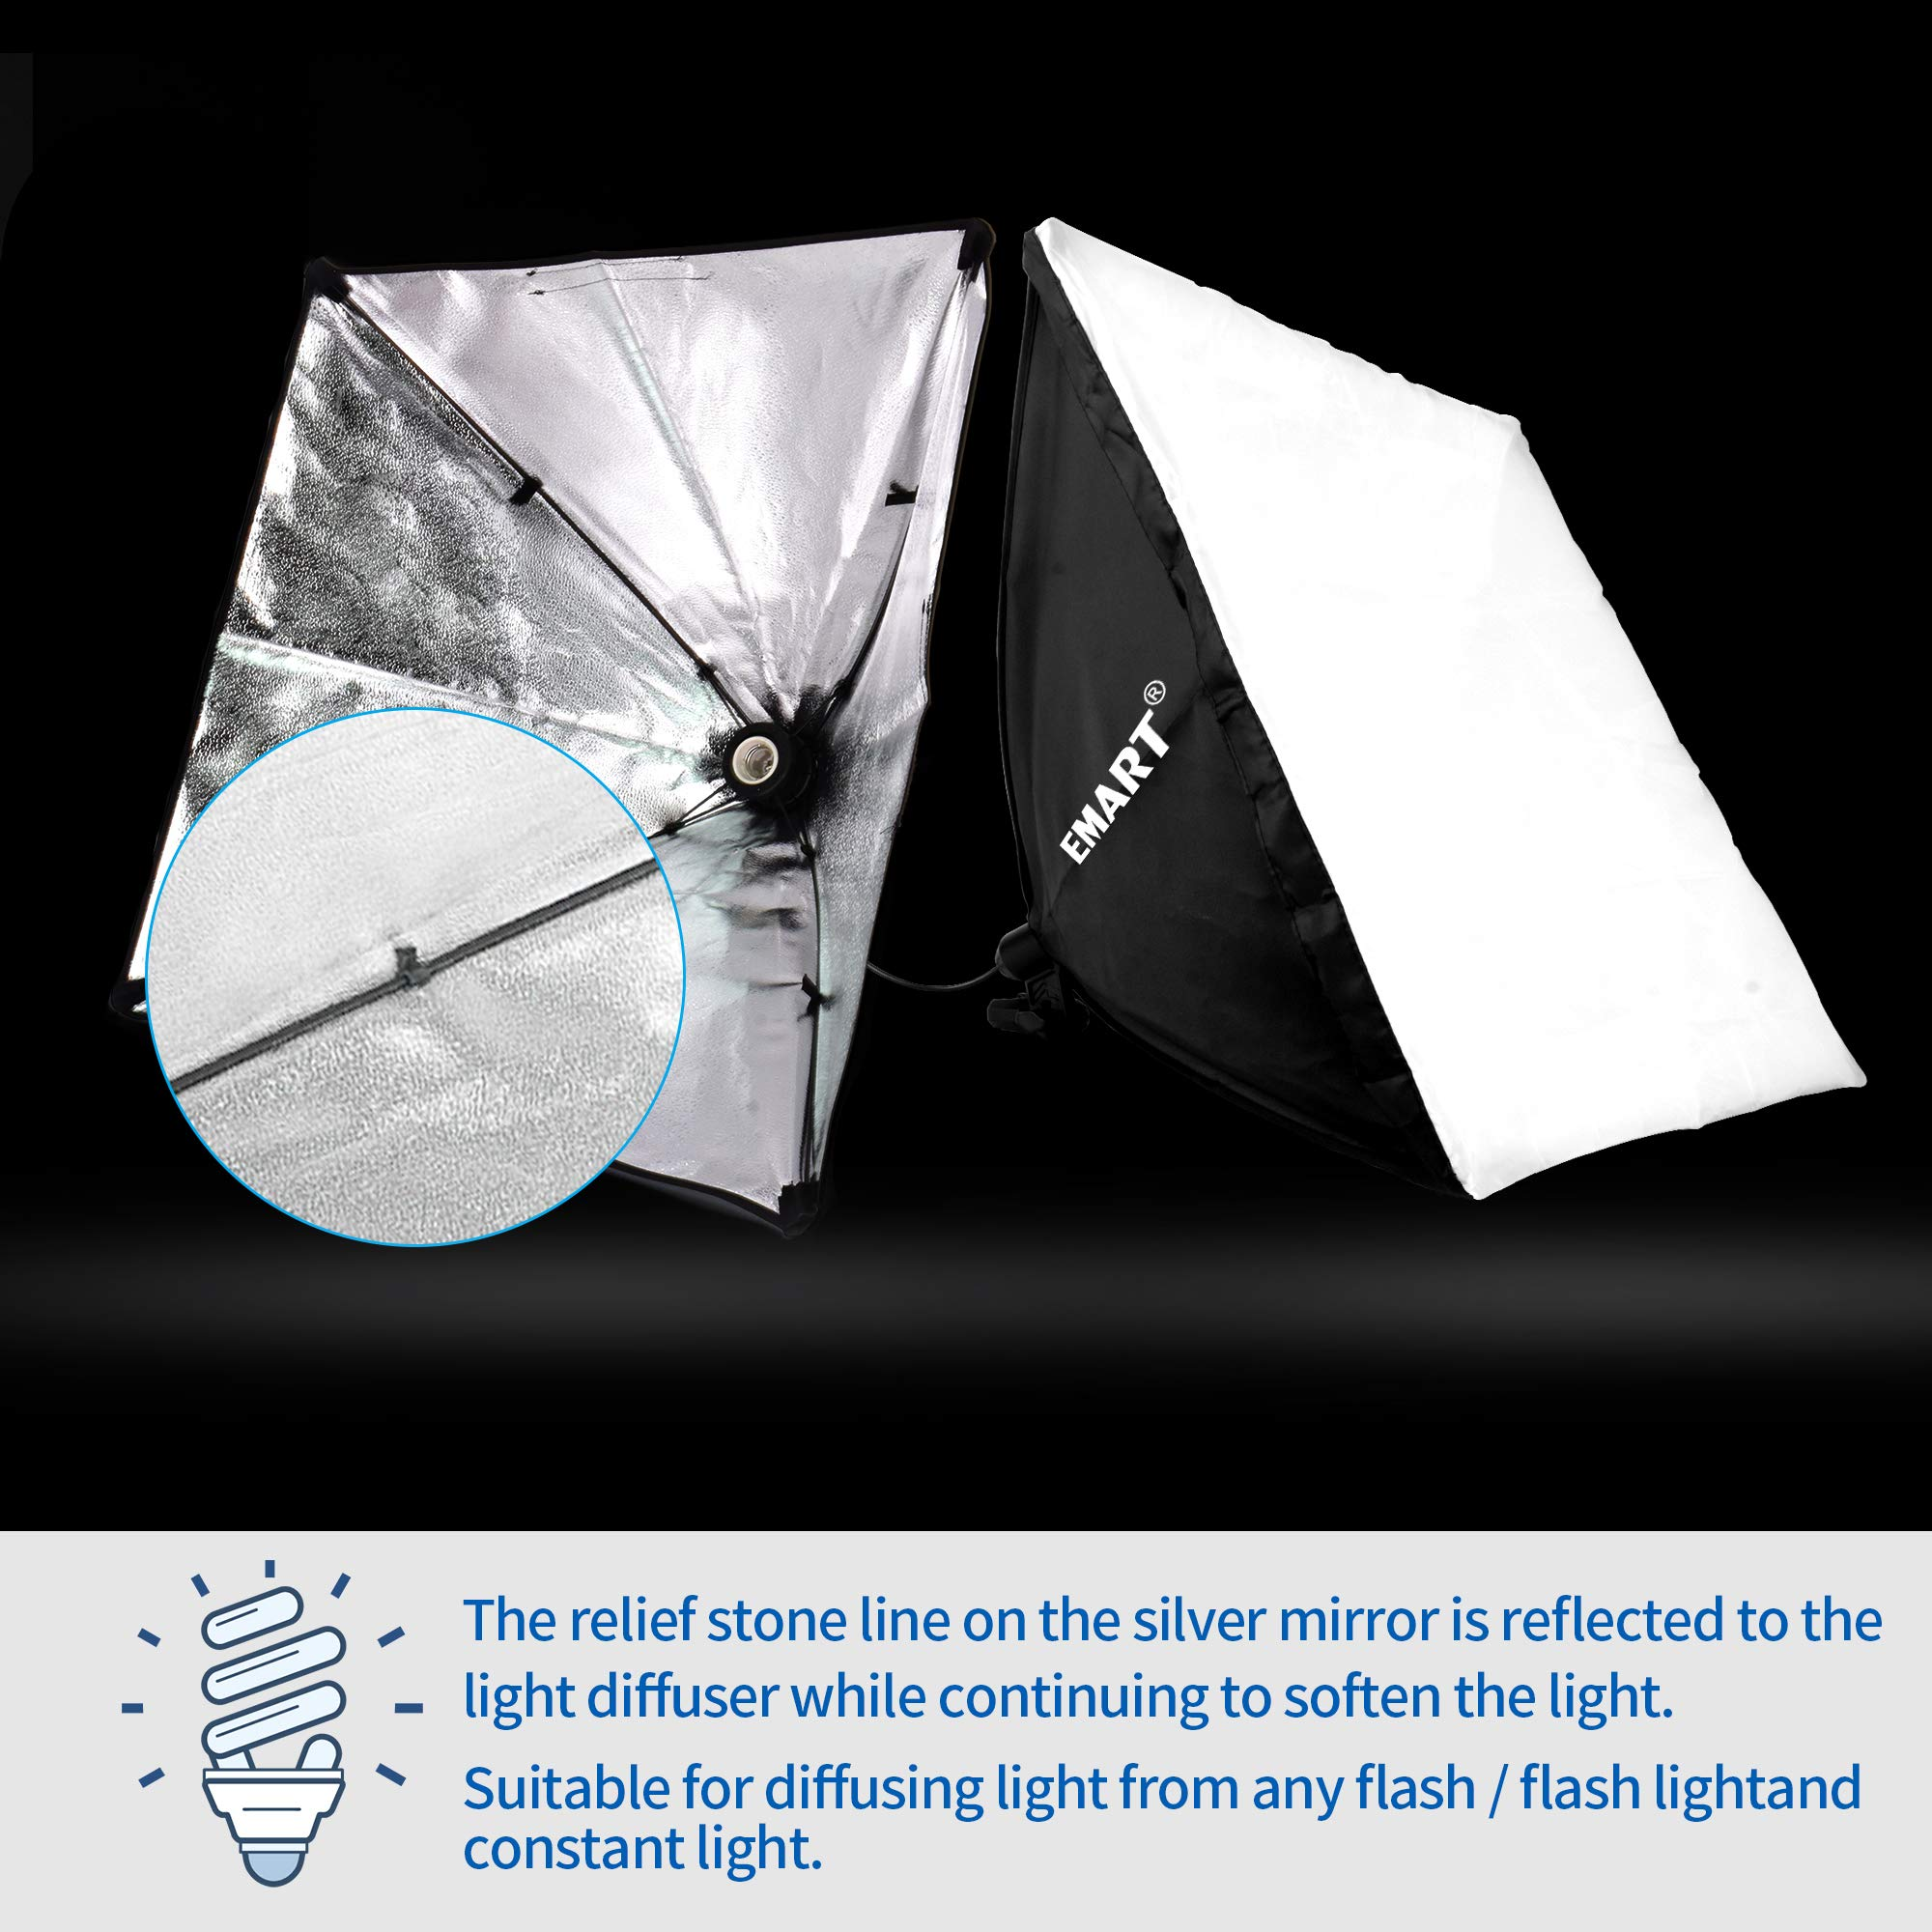 Emart 900W Softbox Lighting Kit Photography Continuous Photo Studio Light System for YouTube Video Shooting Soft Box 24'' x 24'' by EMART (Image #2)